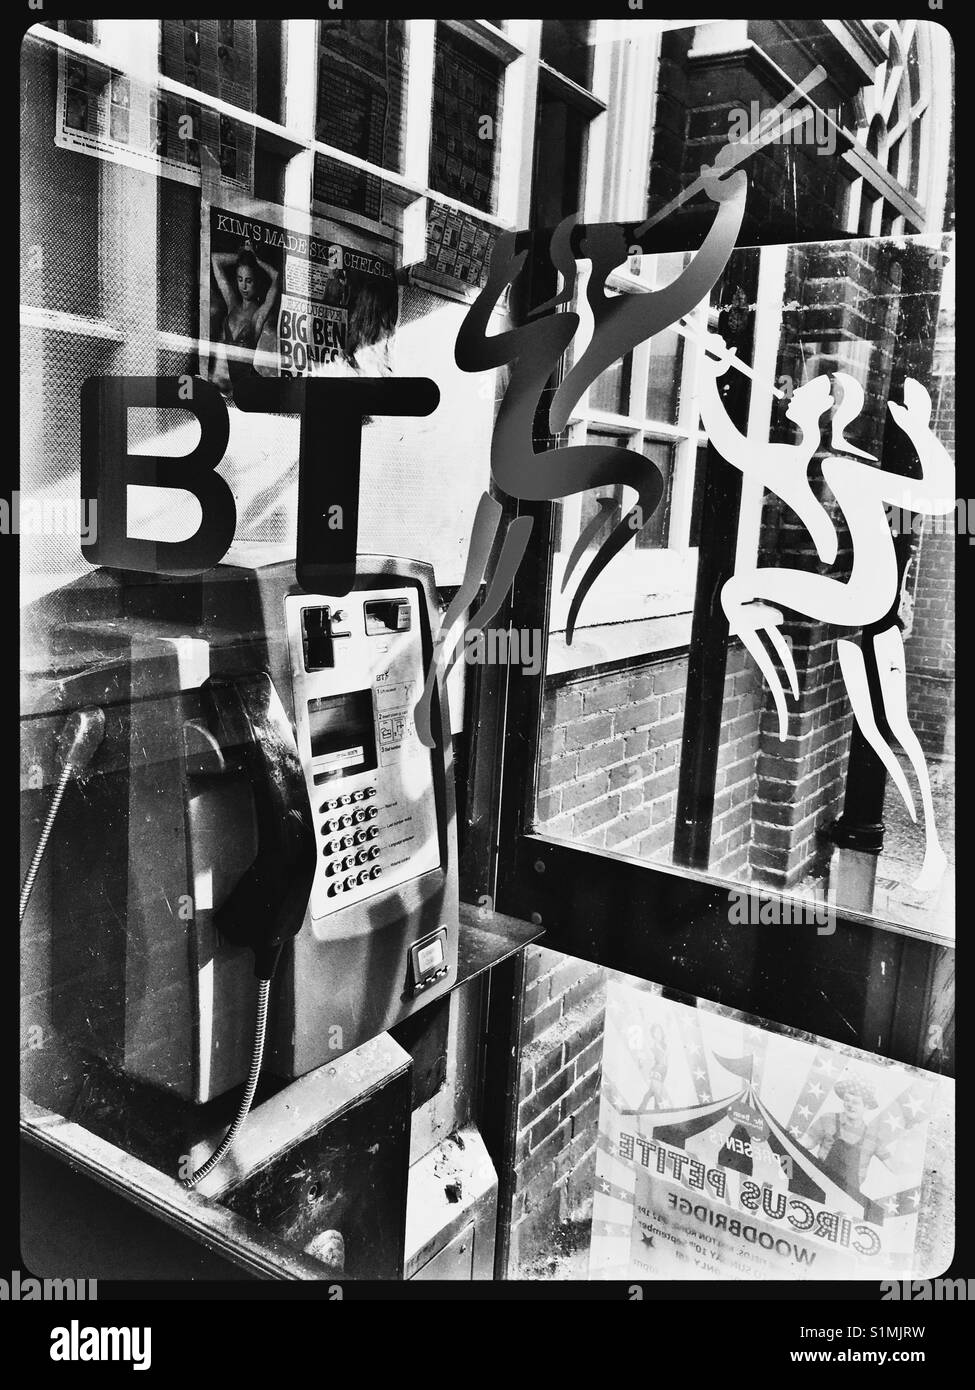 1990's BT Telephone Kiosk with the defunct 'The Herald' logo. - Stock Image